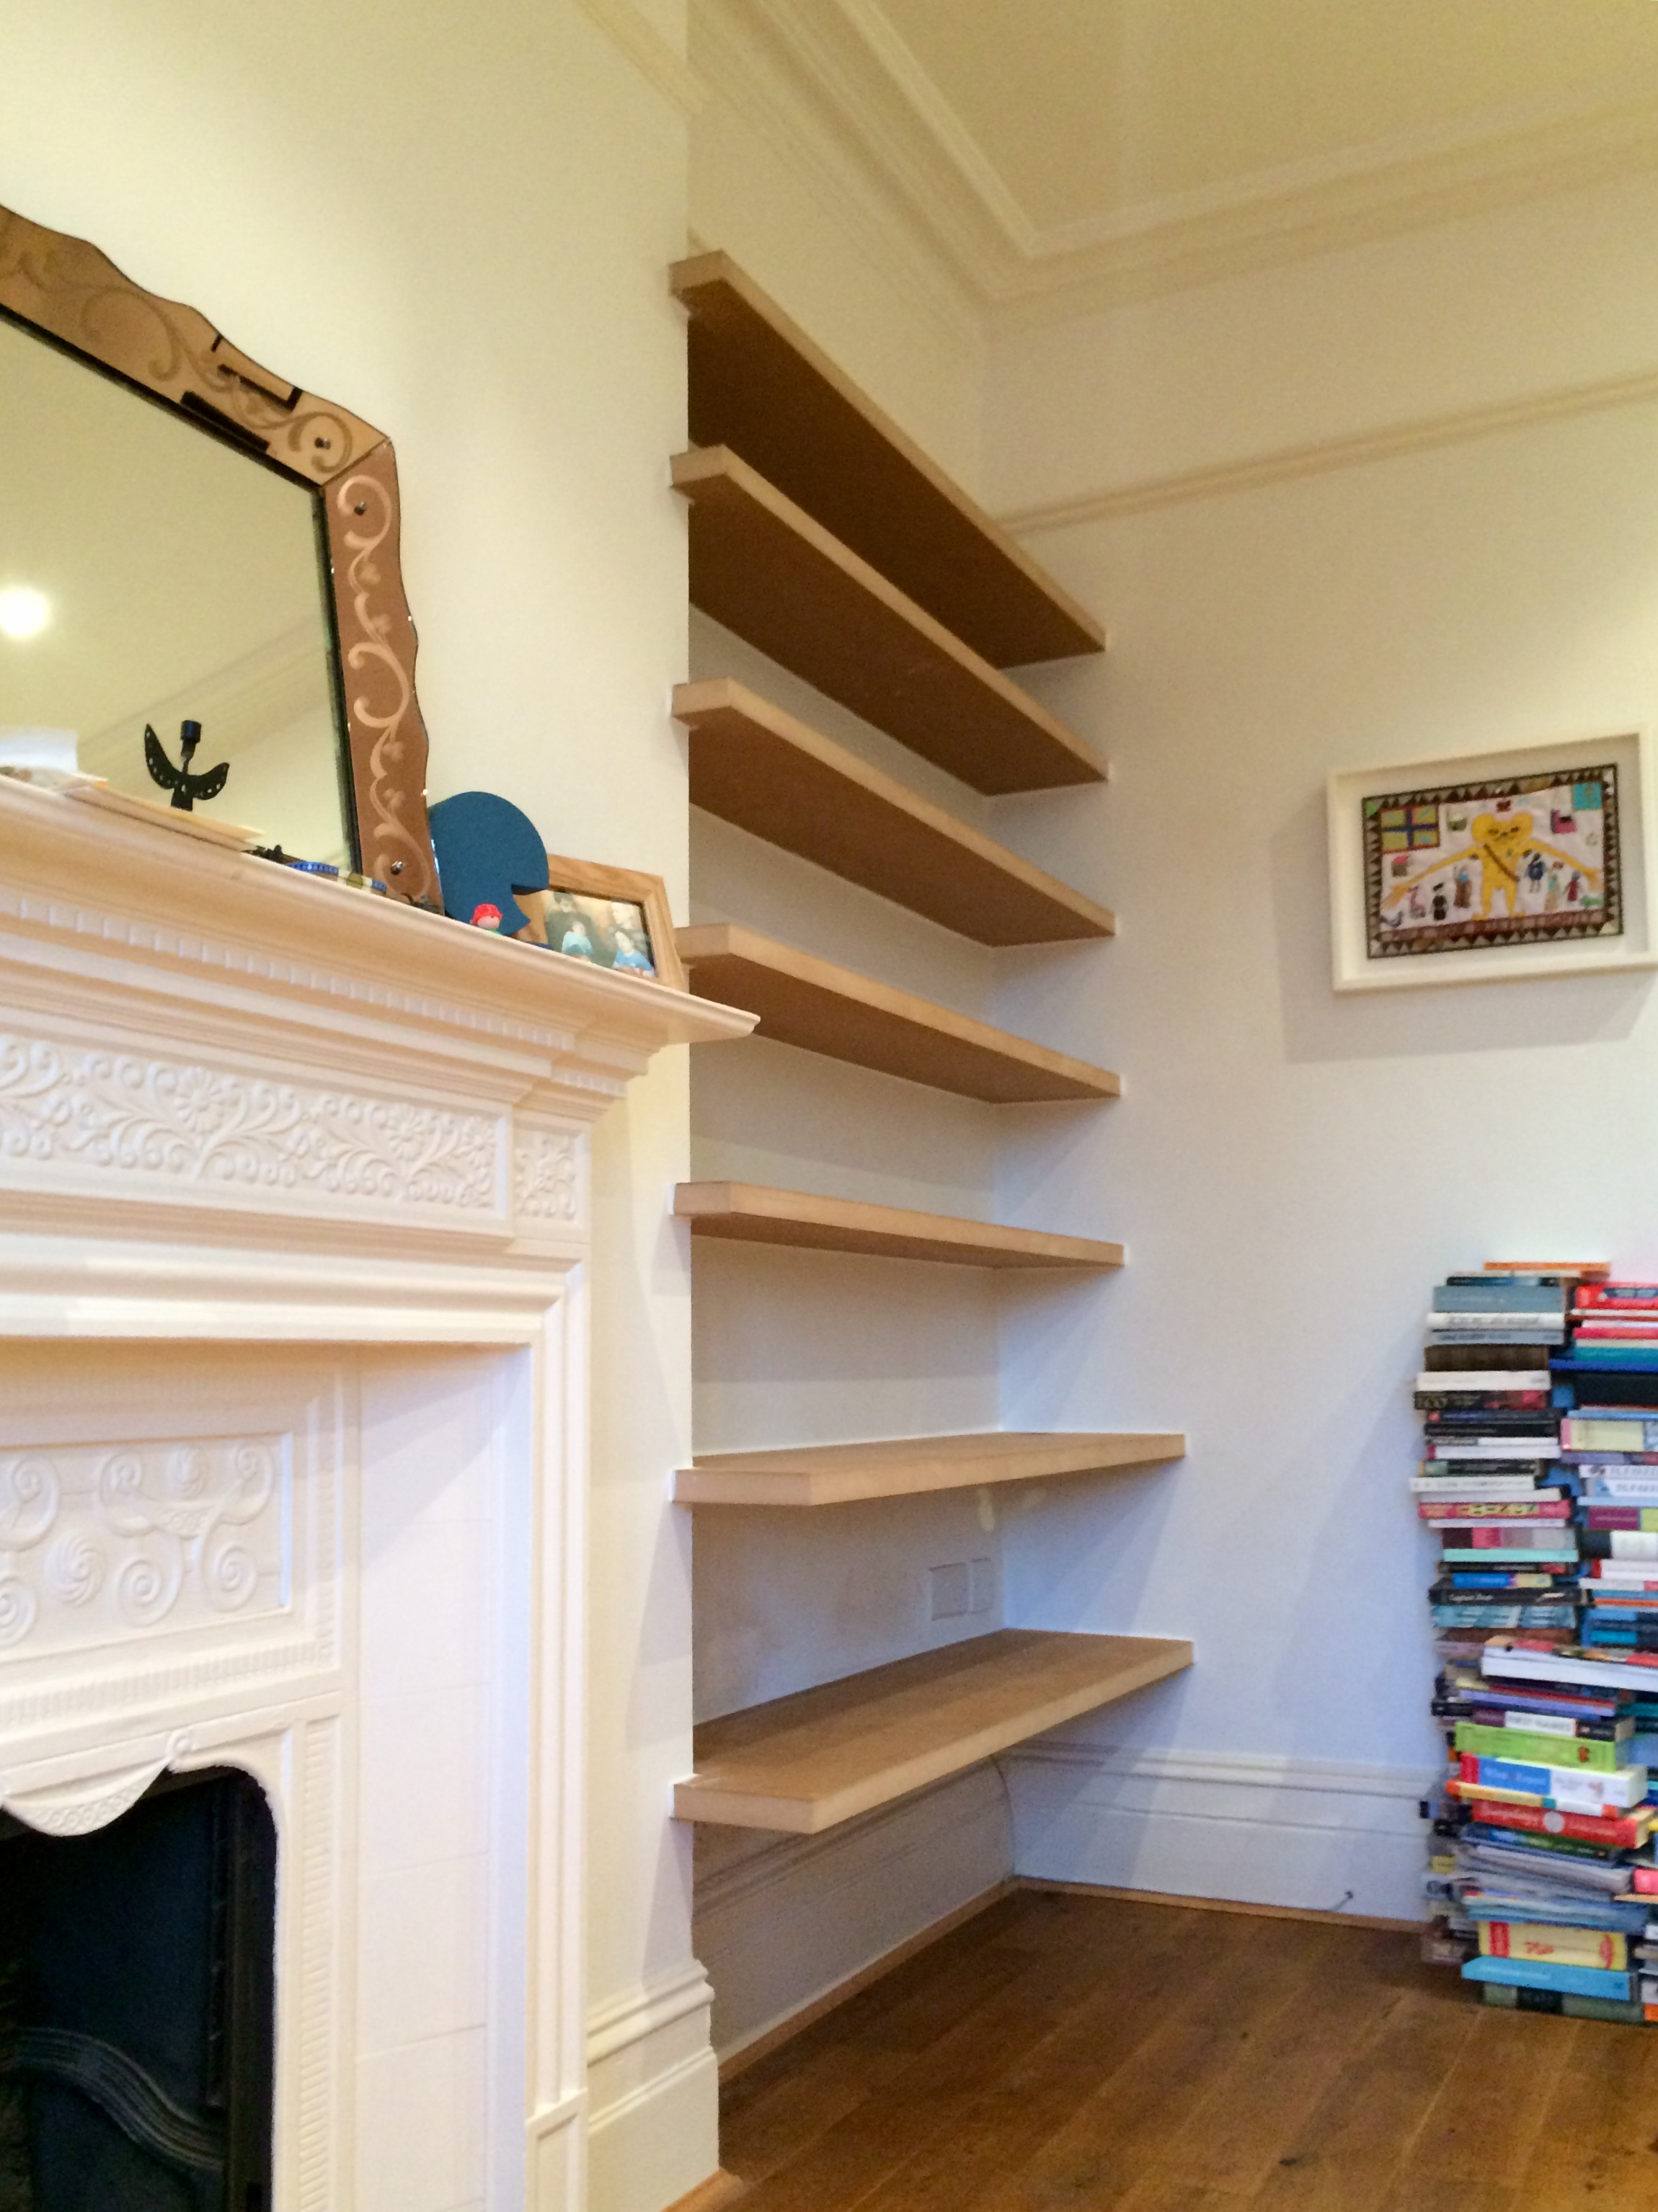 - A combination of shelf depths allow for larger books near the floor, along with a place for a stereo and lamp.